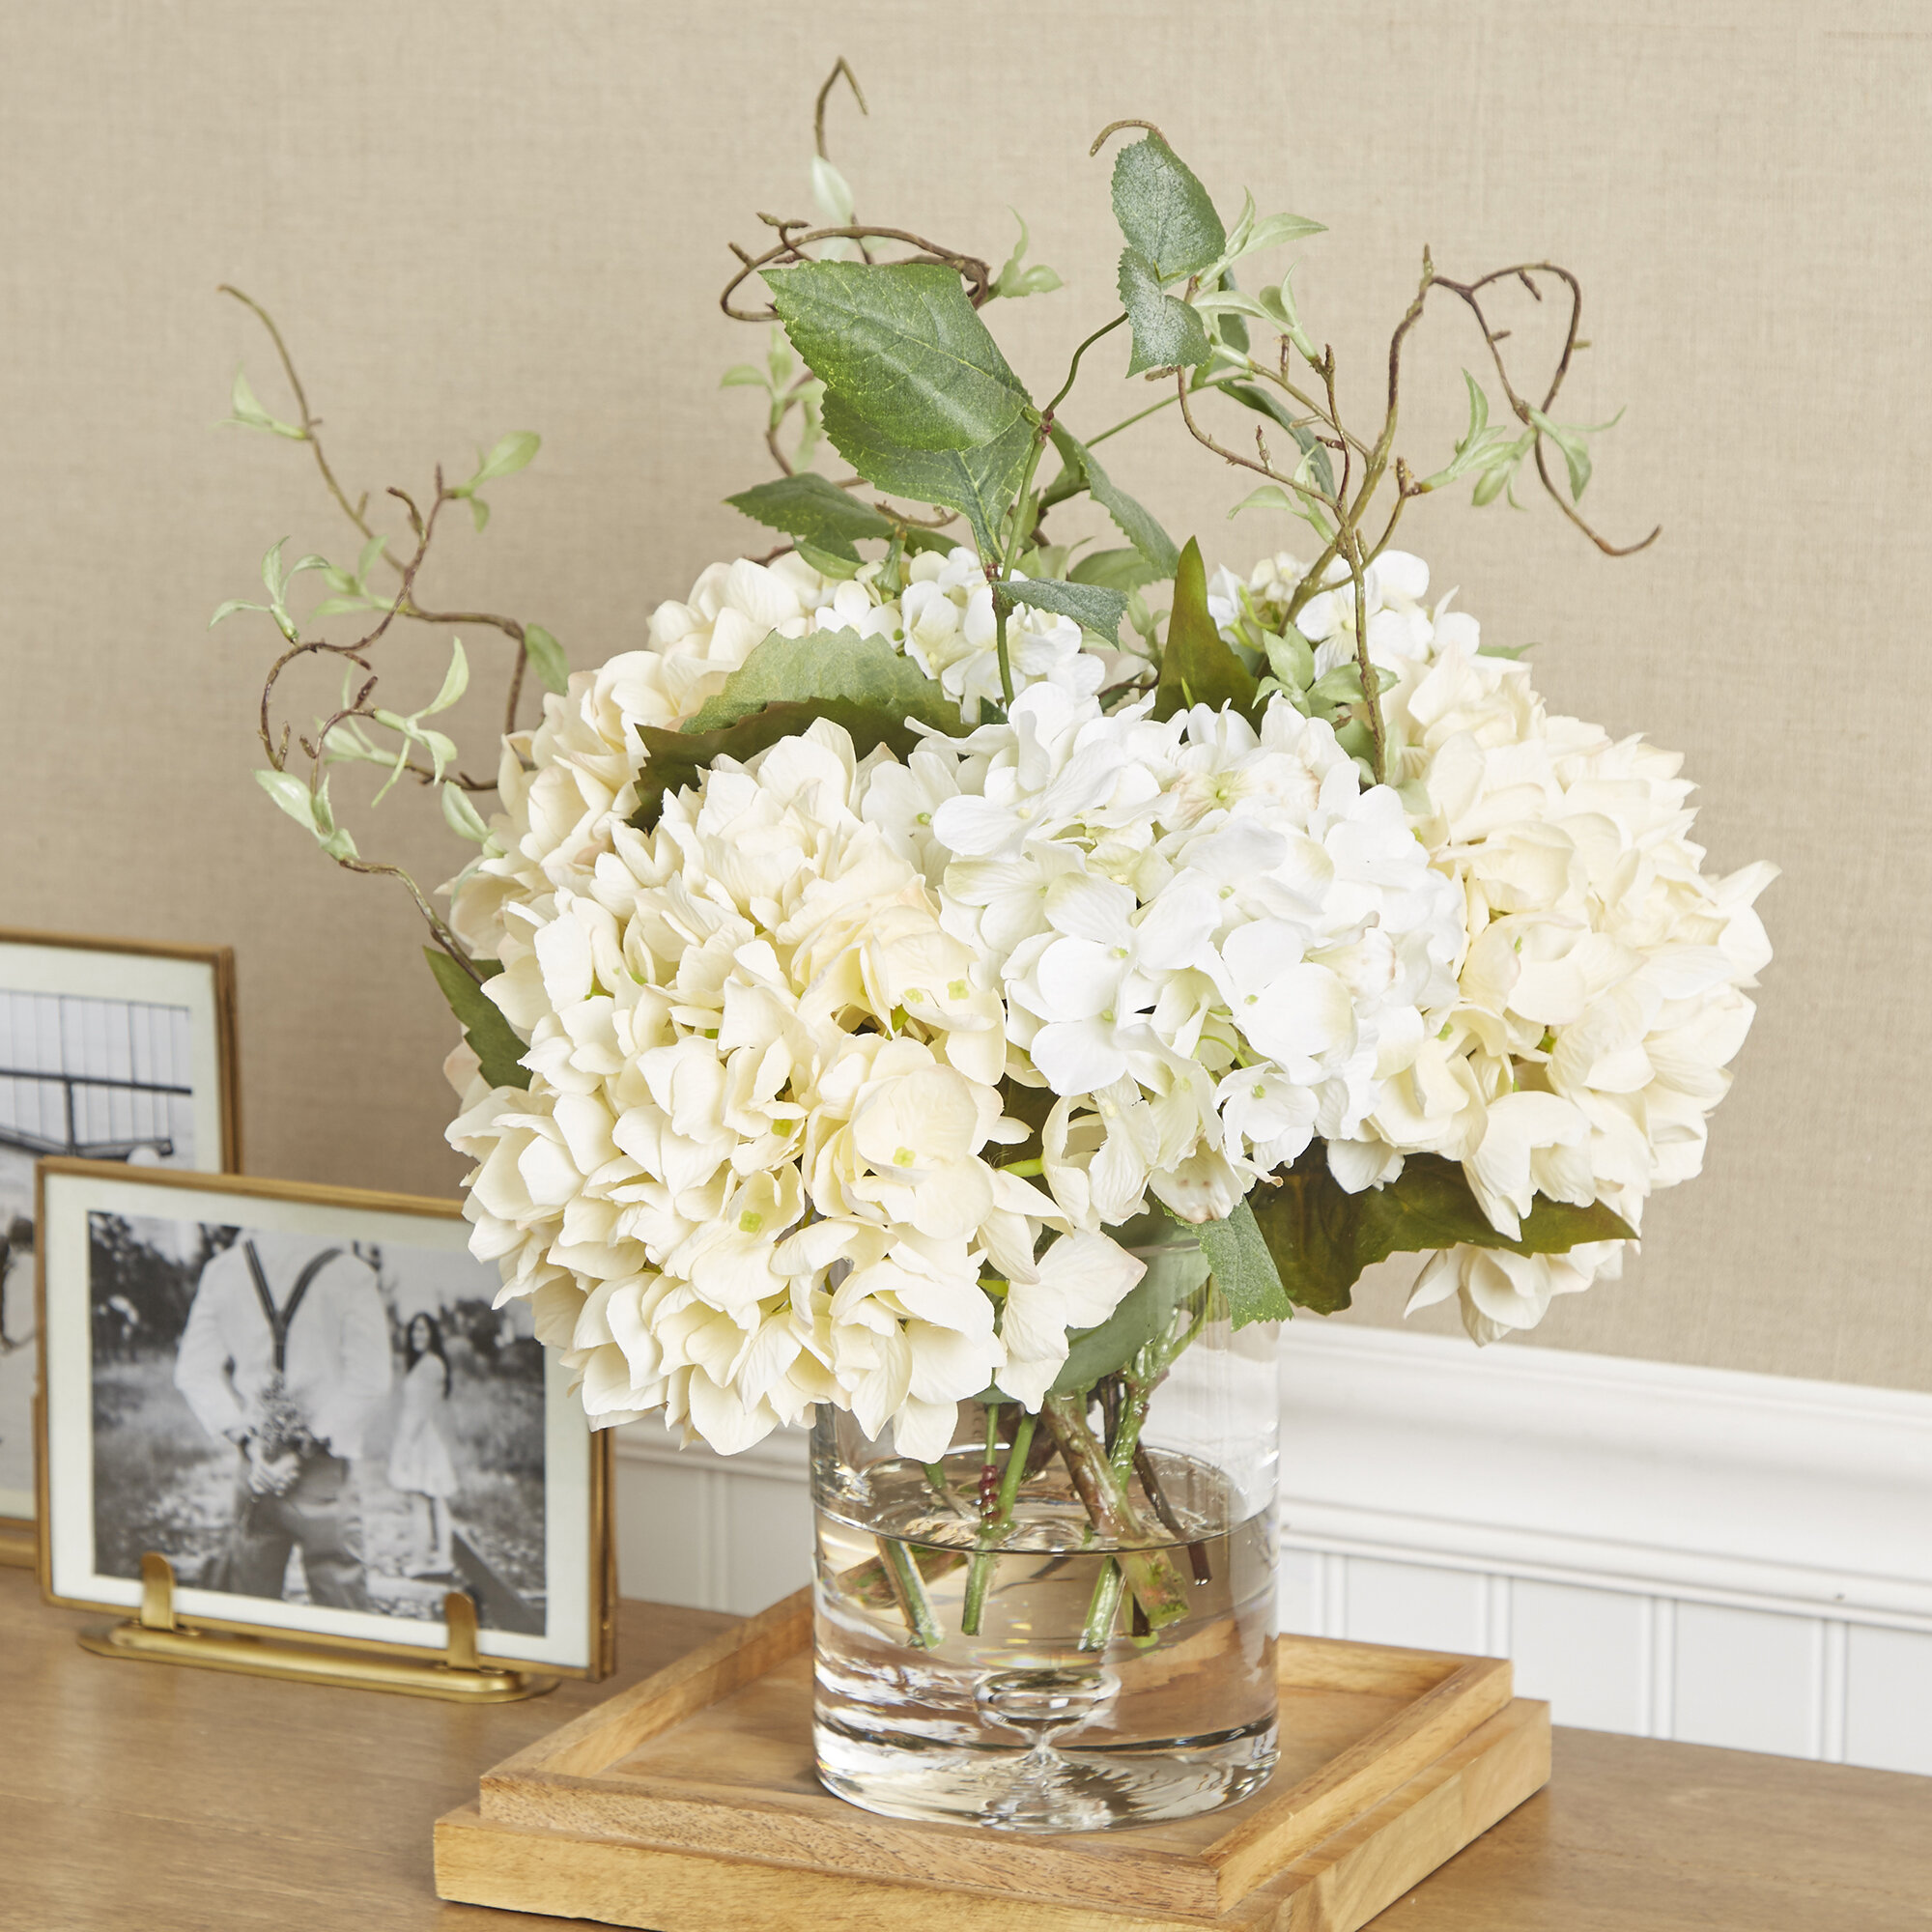 Hydrangea Flower Centerpieces You Ll Love In 2021 Wayfair